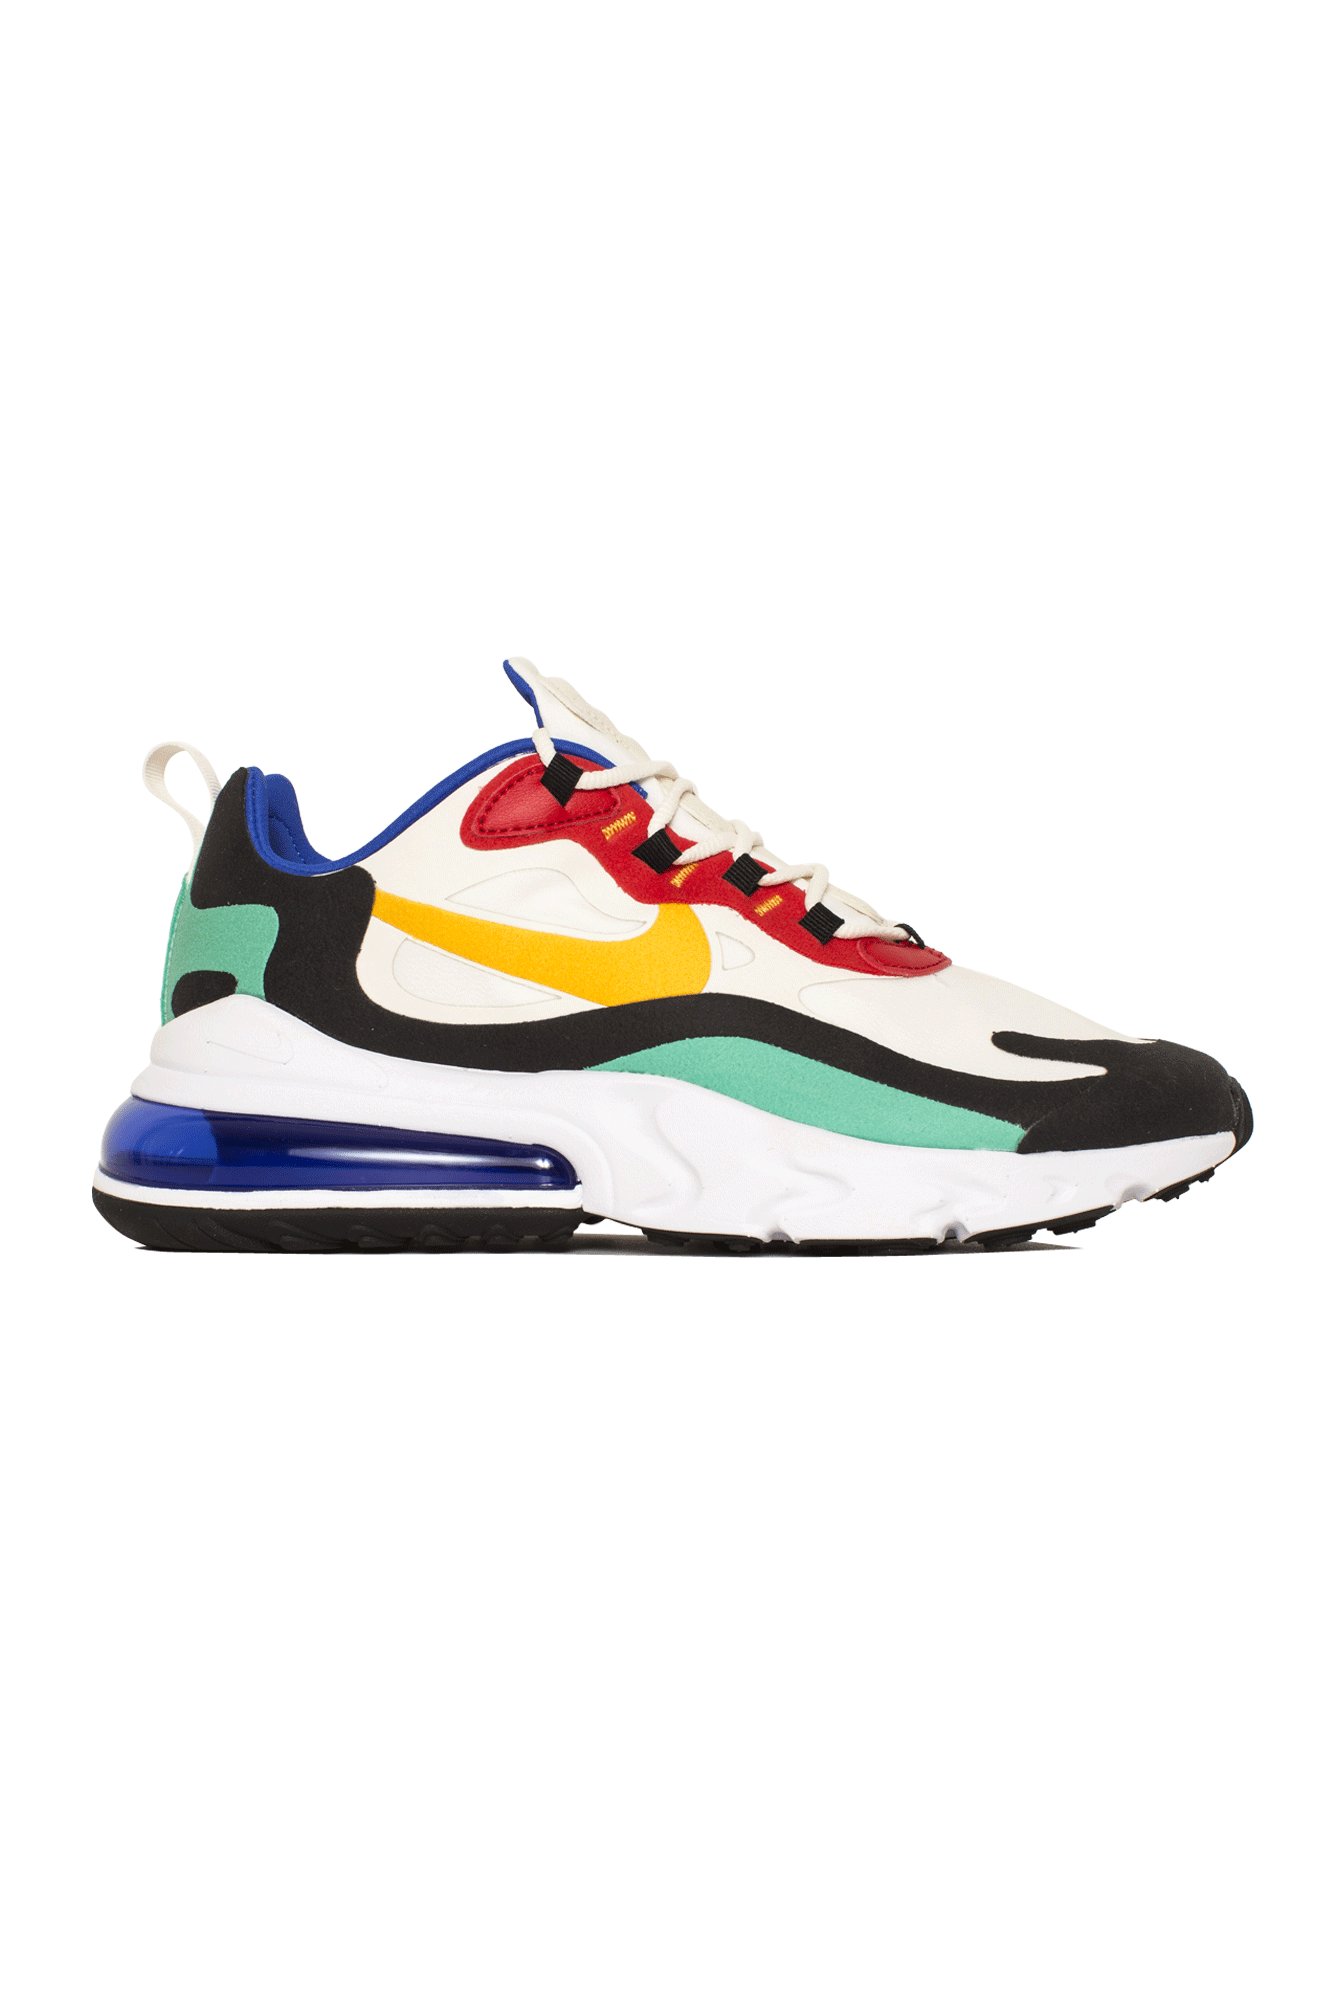 Nike Sneakers AIR MAX 270 REACT White AO4971-#000#002#6 - One Block Down